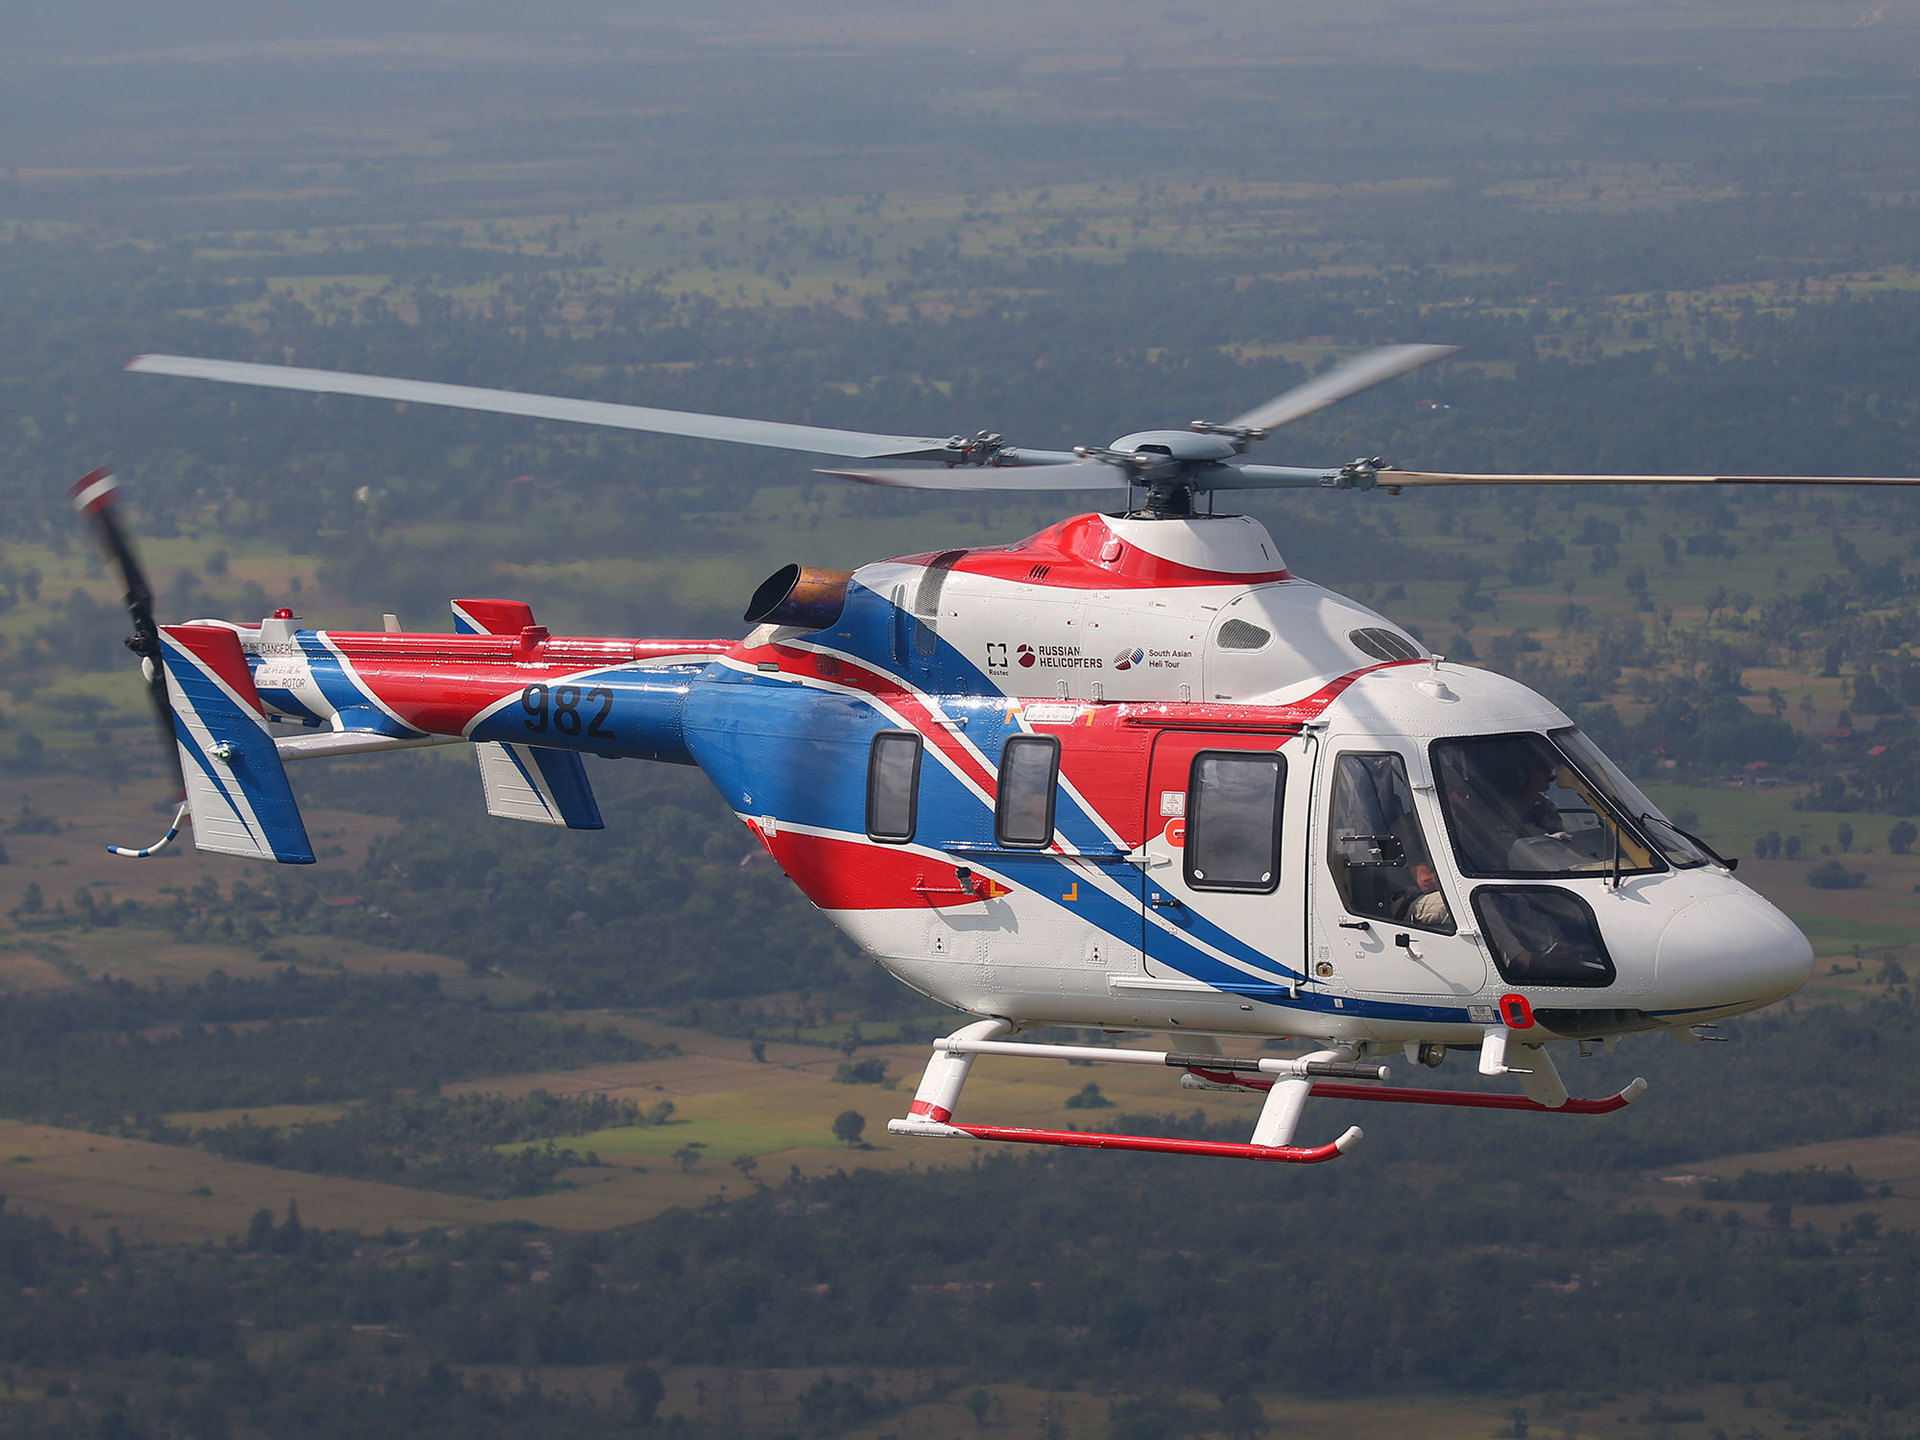 Russian Helicopters demonstrates a modernized Ansat concept at Paris Air Show 2019